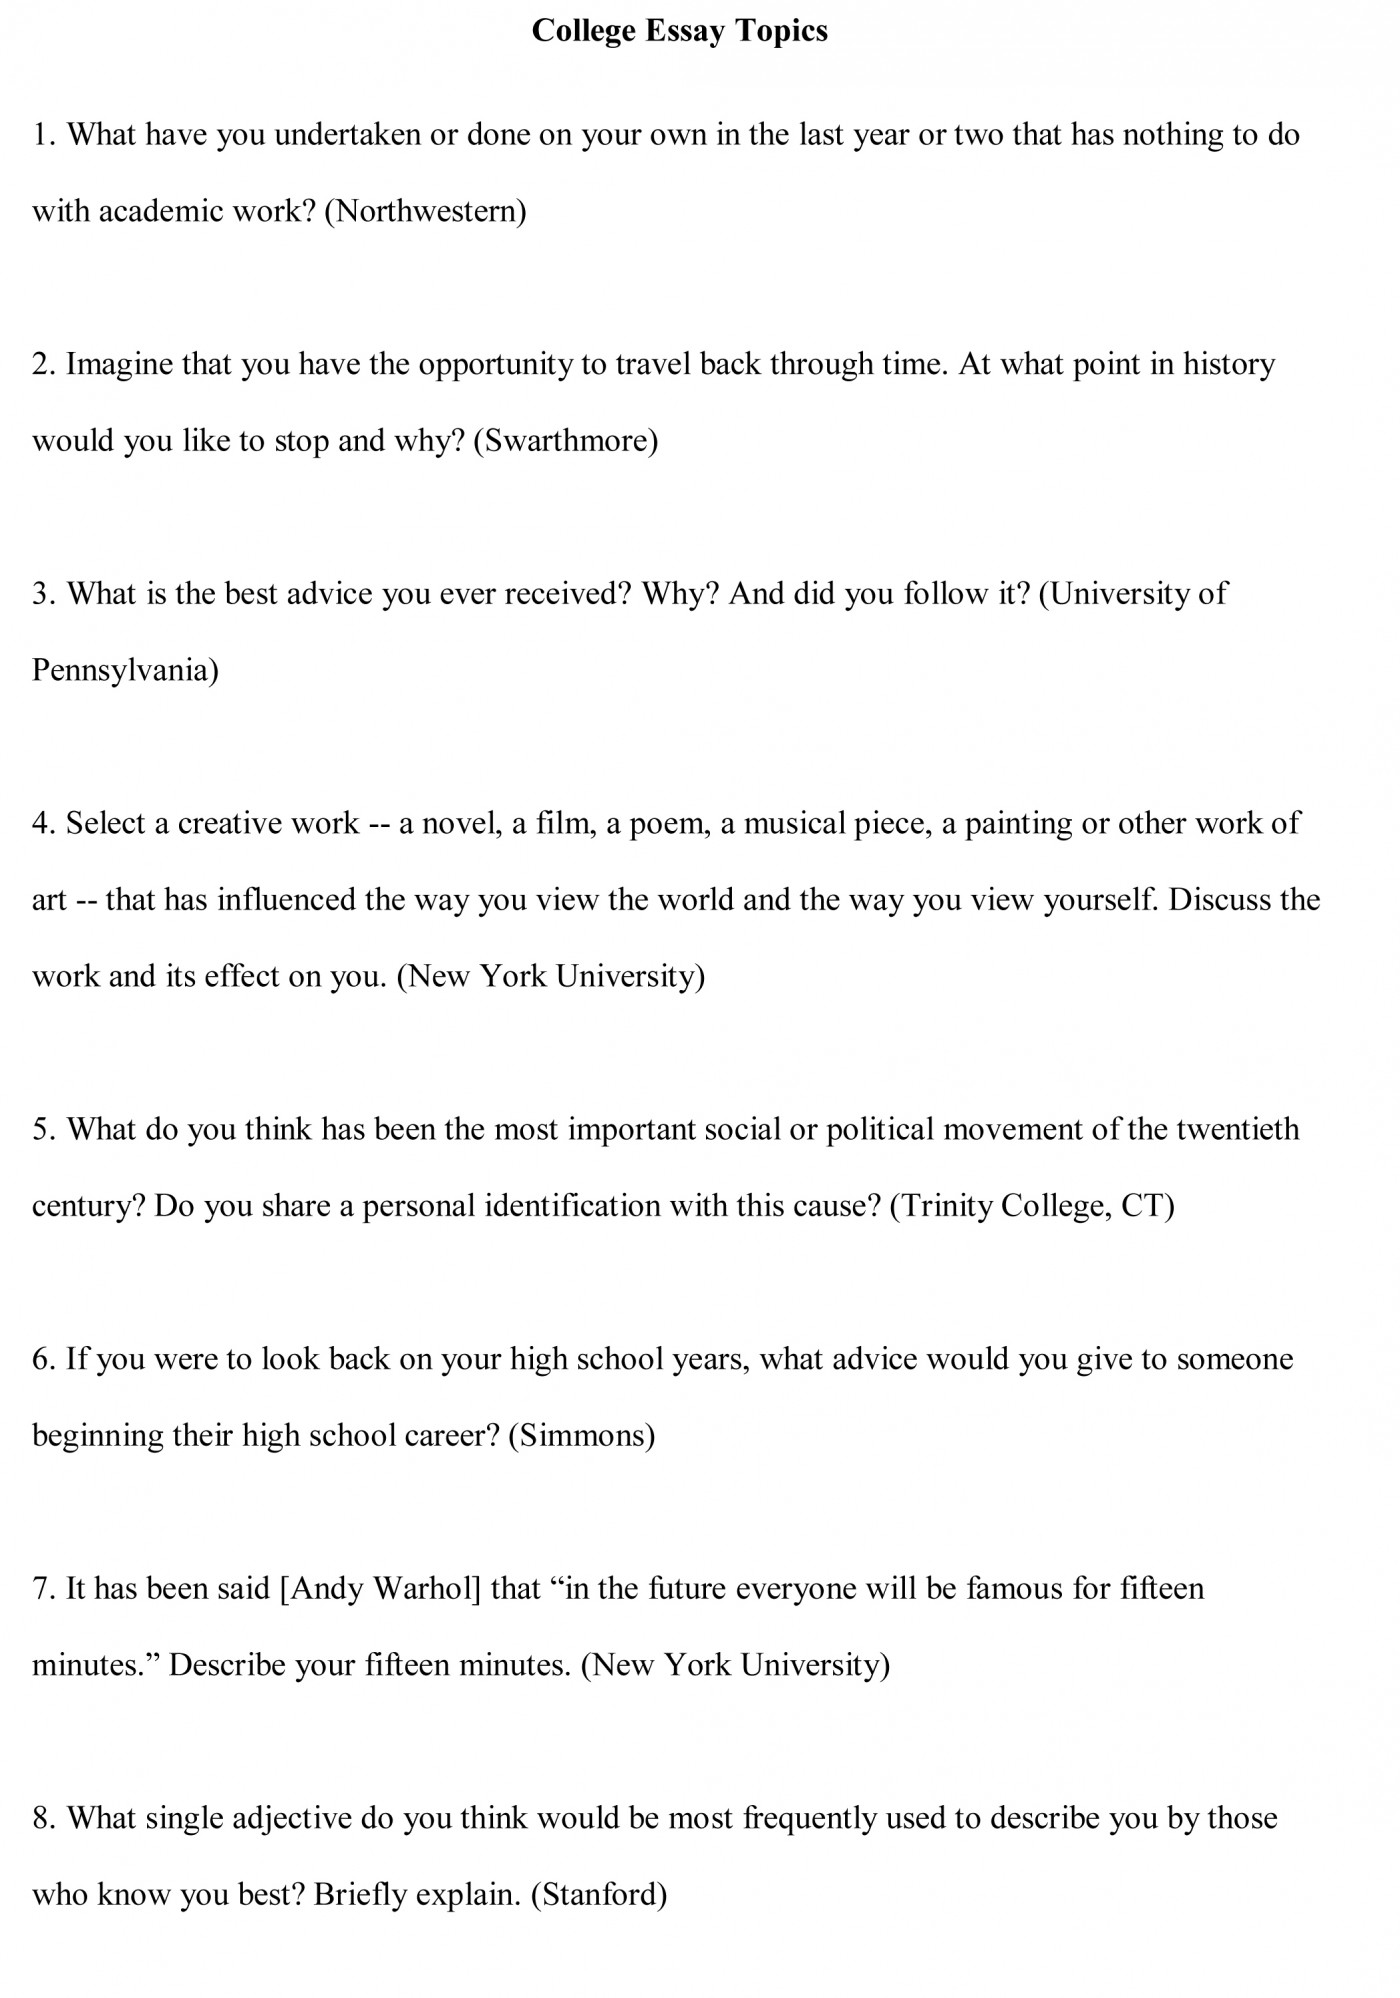 019 College Essay Topics Free Sample1 Example High School Dreaded Experience 1400